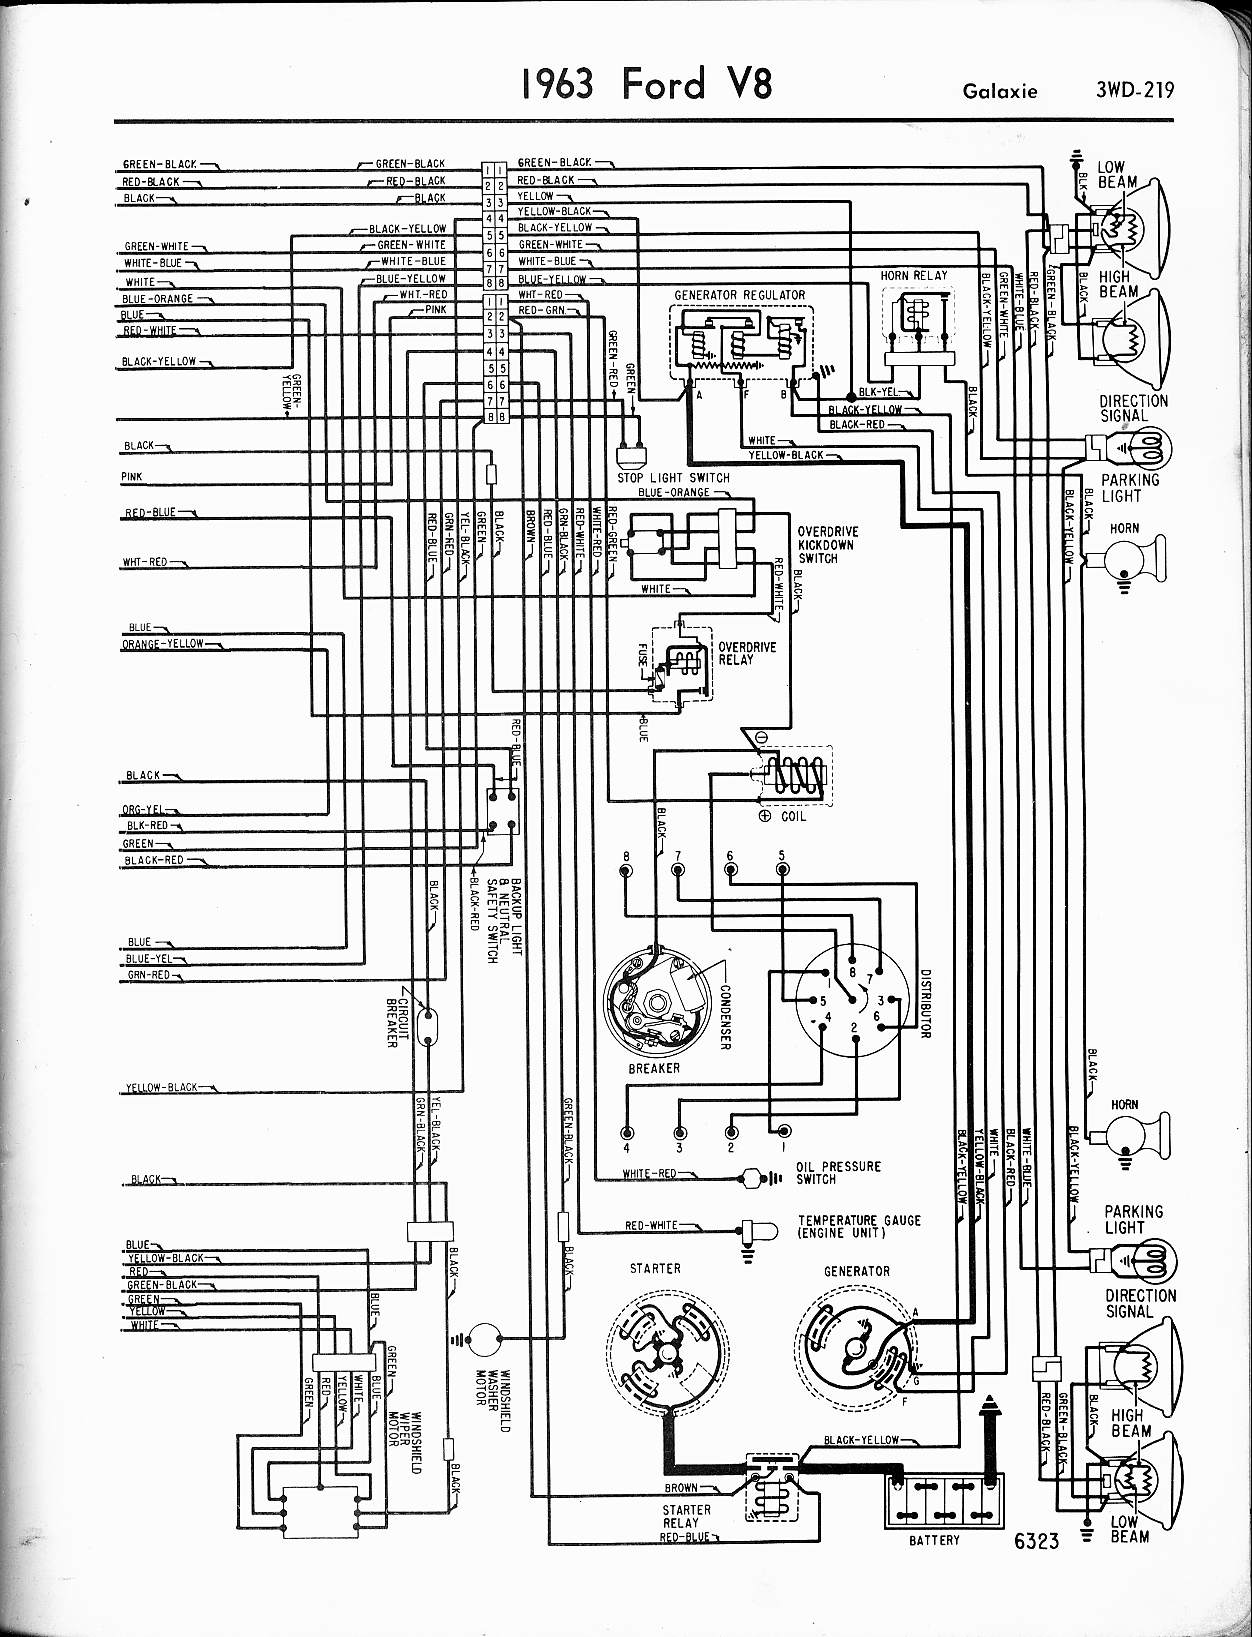 477797 Circuit Breaker besides 1971 Corvette Wiring Diagram Pdf moreover 1966 Ford Mustang Wiring Diagram Schematics Diagrams 1969 Electrical further Catalog3 likewise 1955 T Bird Wiring Diagram 1955 55 Ford Thunderbird T Bird. on 1965 corvette dash wiring diagram